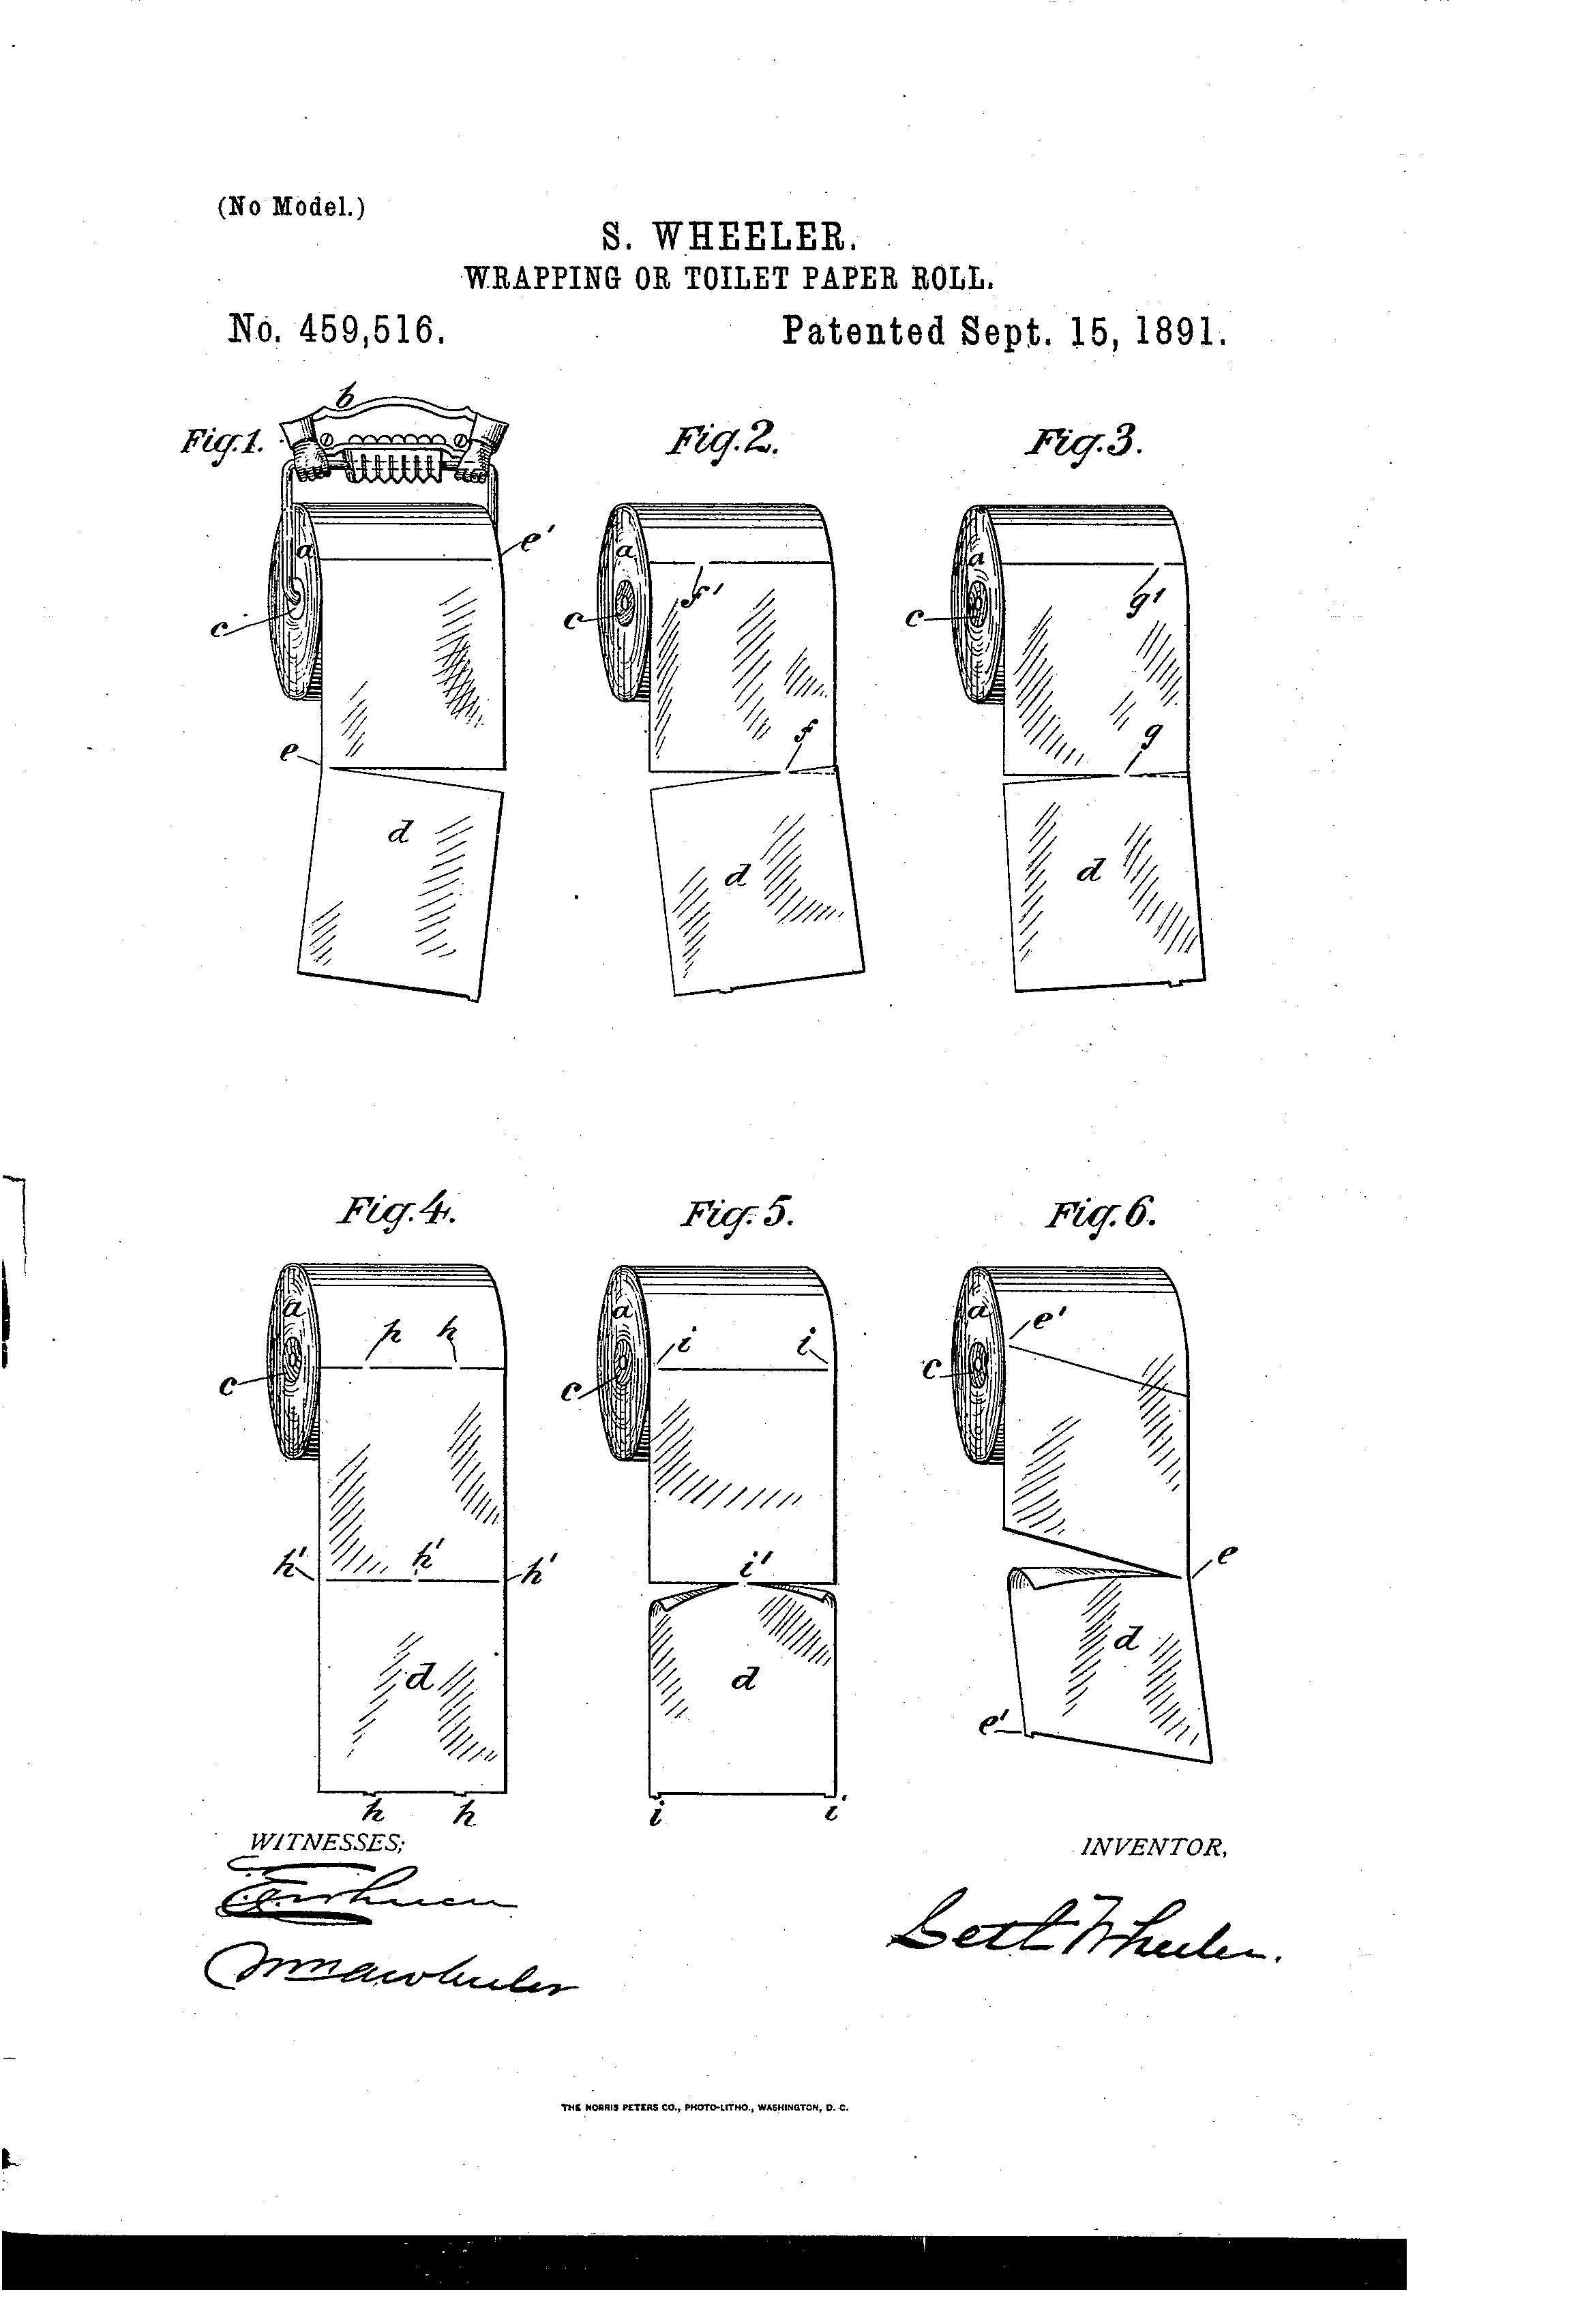 How to install a toilet paper roll from U S Patent US 459 516 A by Seth. Wc Bathroom Meaning   Original 21 com